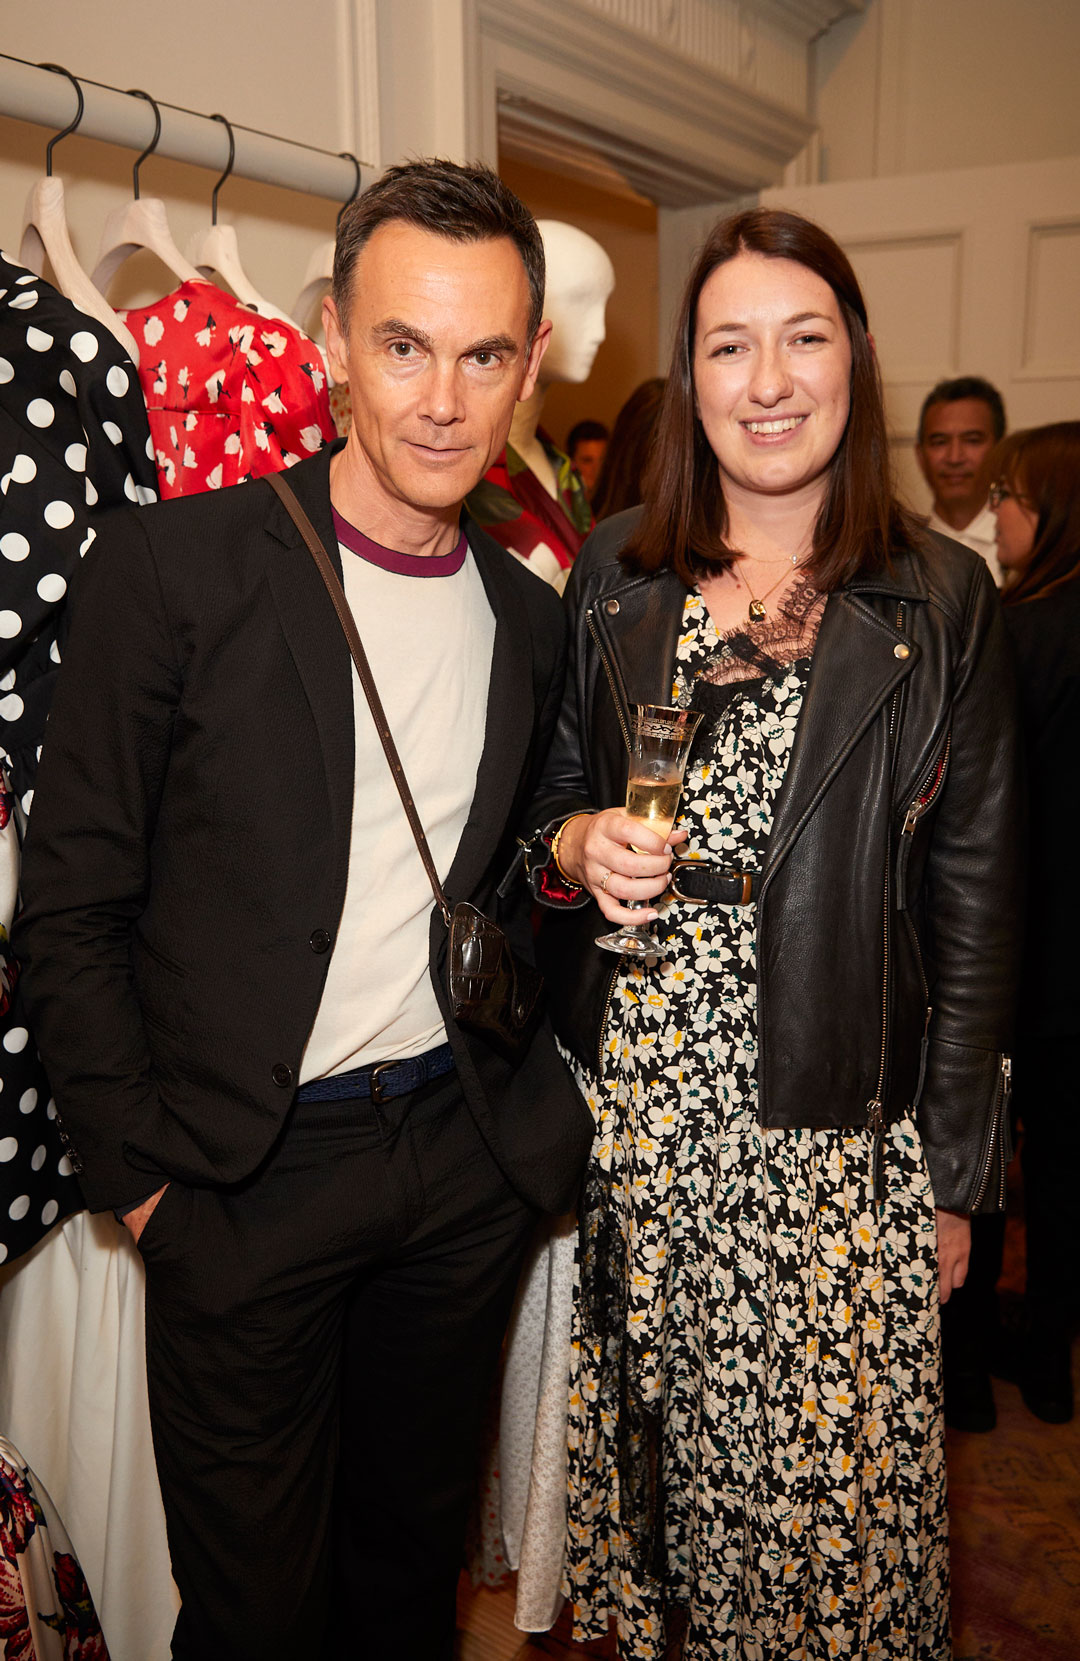 Nick Vinson and Chelsea Power at the Interiors launch at MATCHESFASHION.COM in London